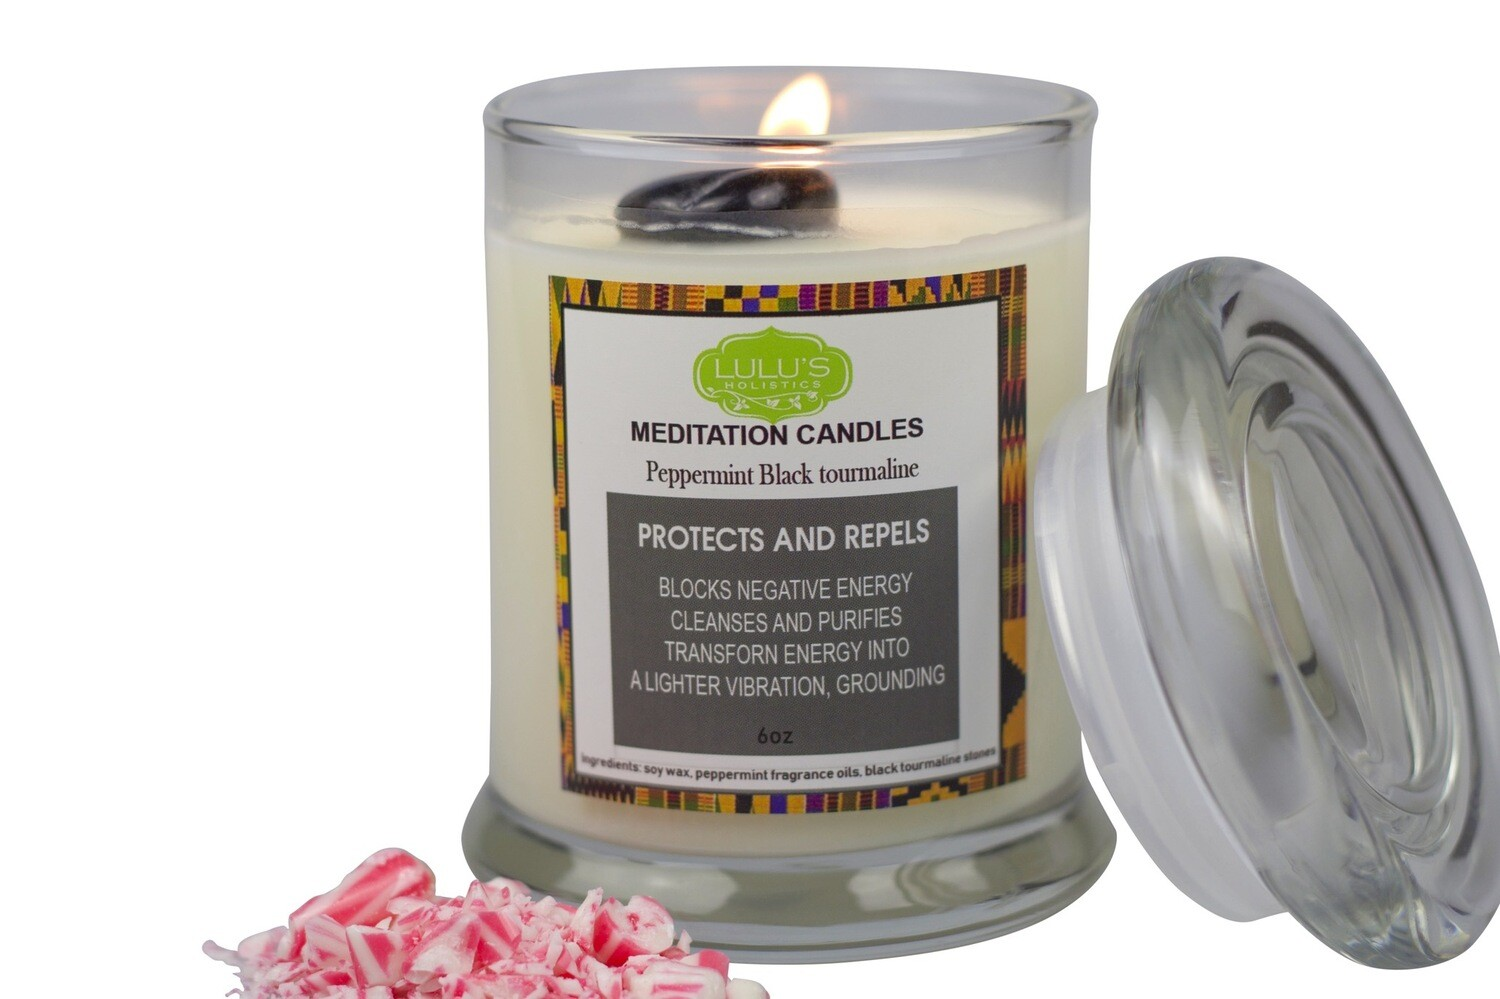 PEPPERMINT BLACK TOURMALINE CANDLE